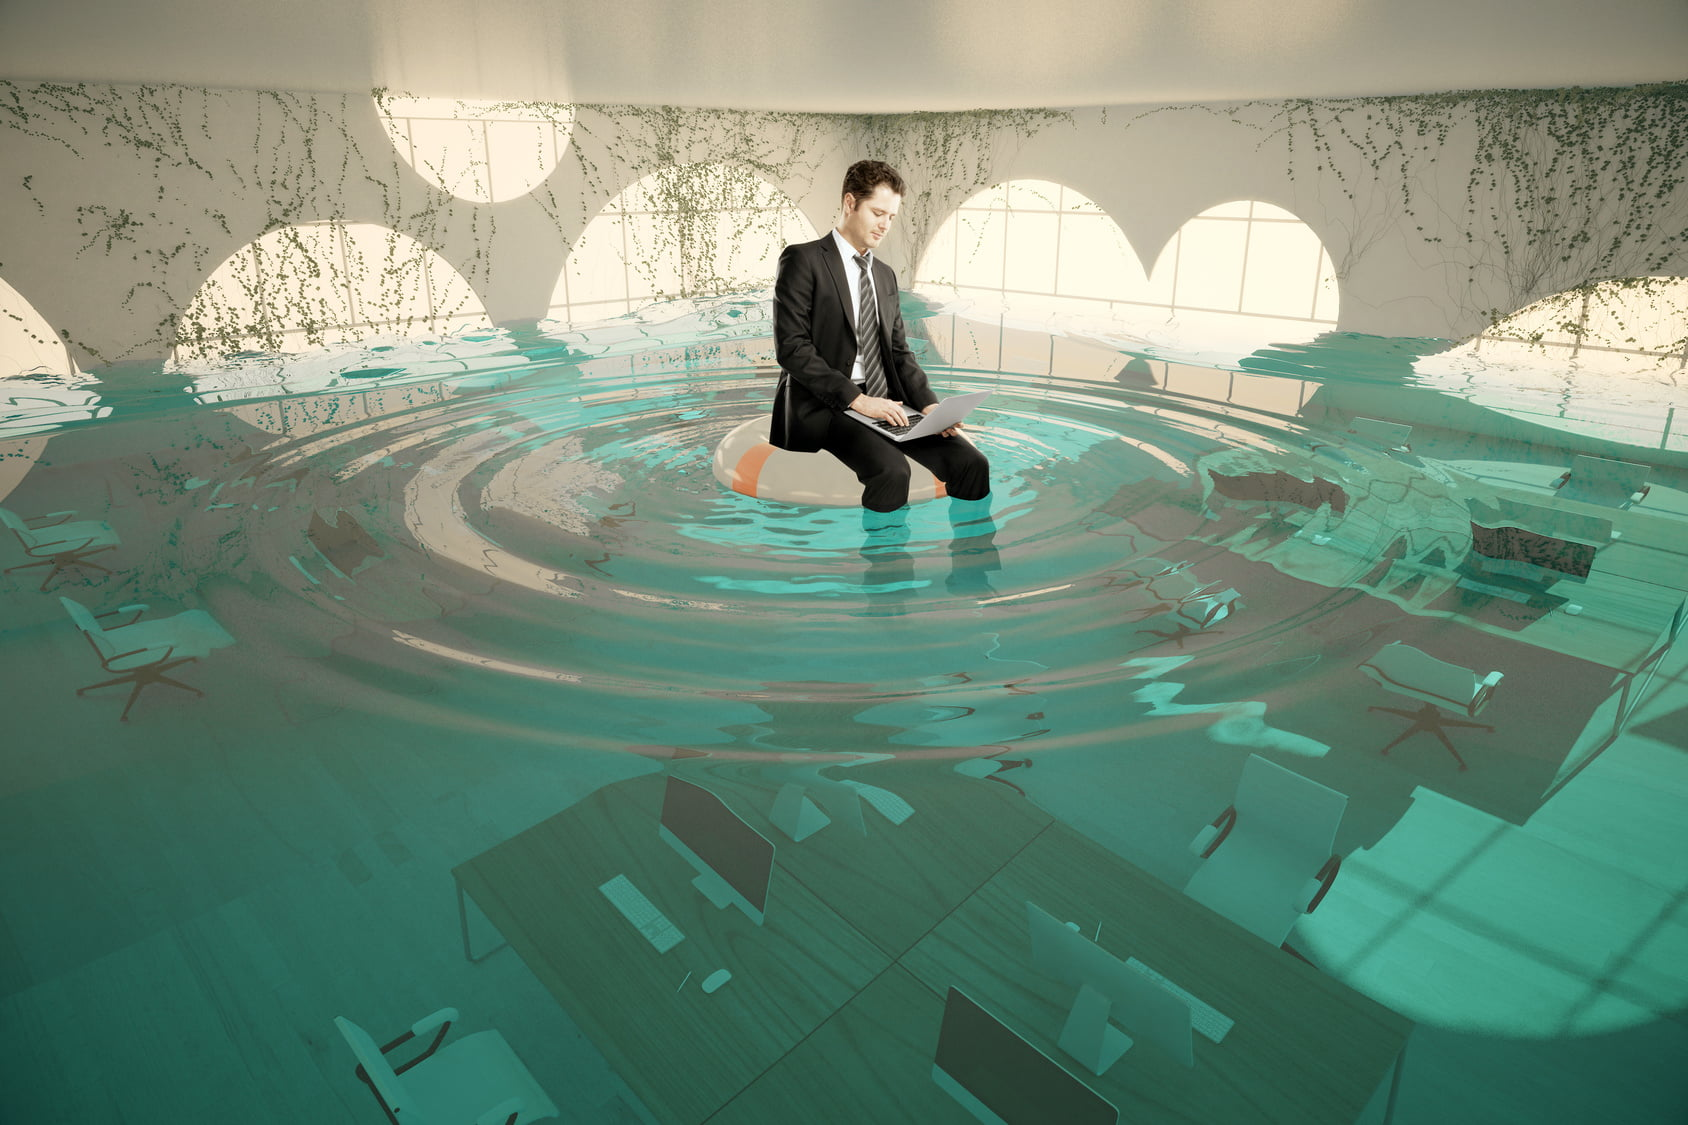 office worker on top of desk surrounded by water